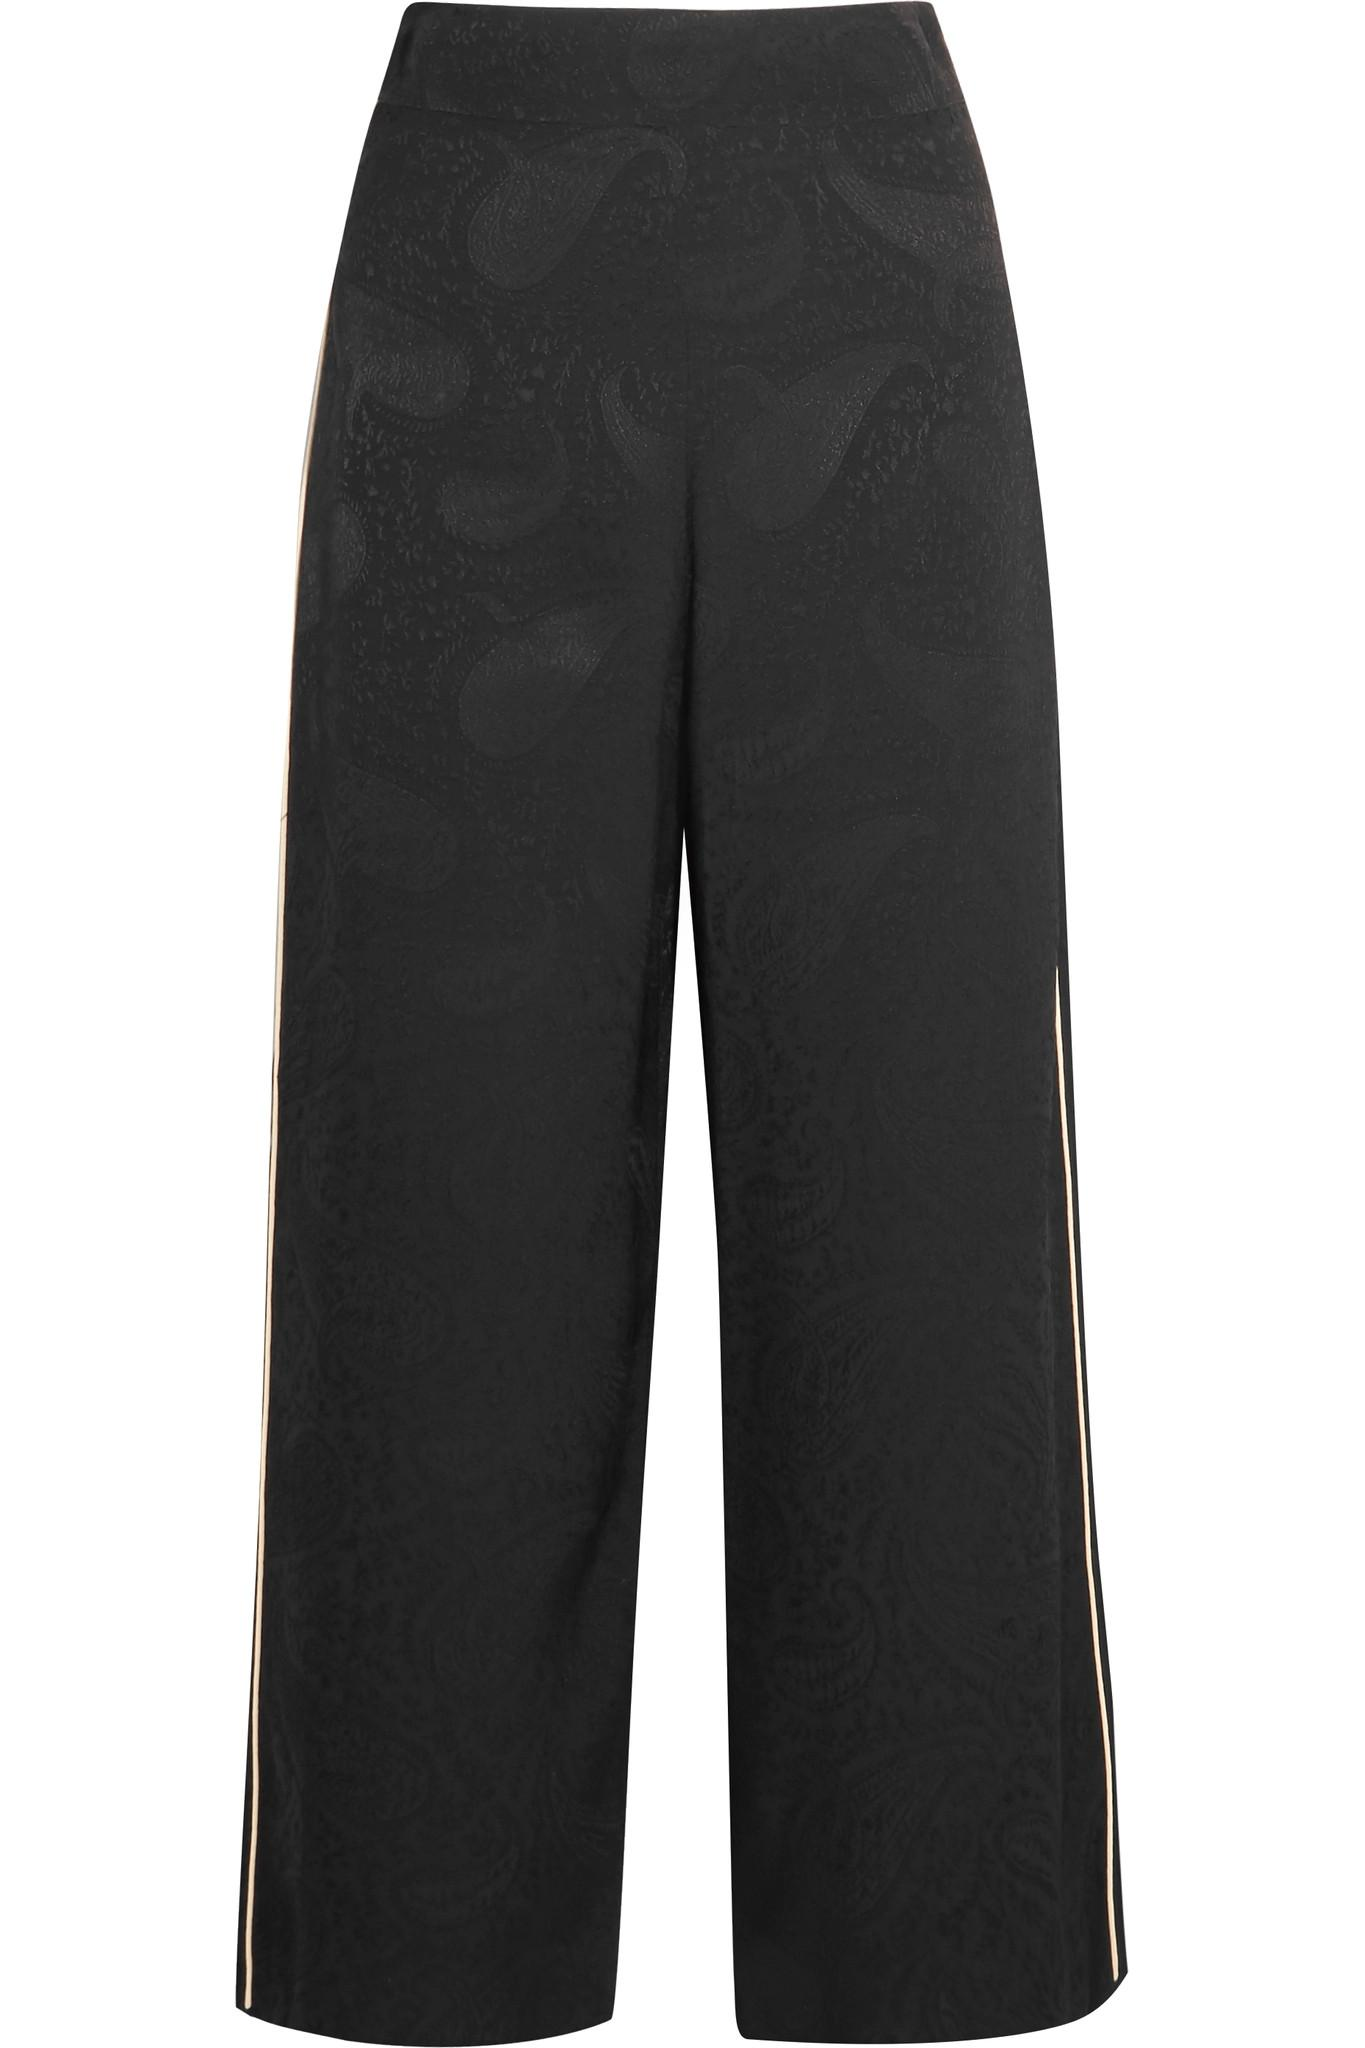 Find great deals on eBay for jacquard pants black. Shop with confidence.